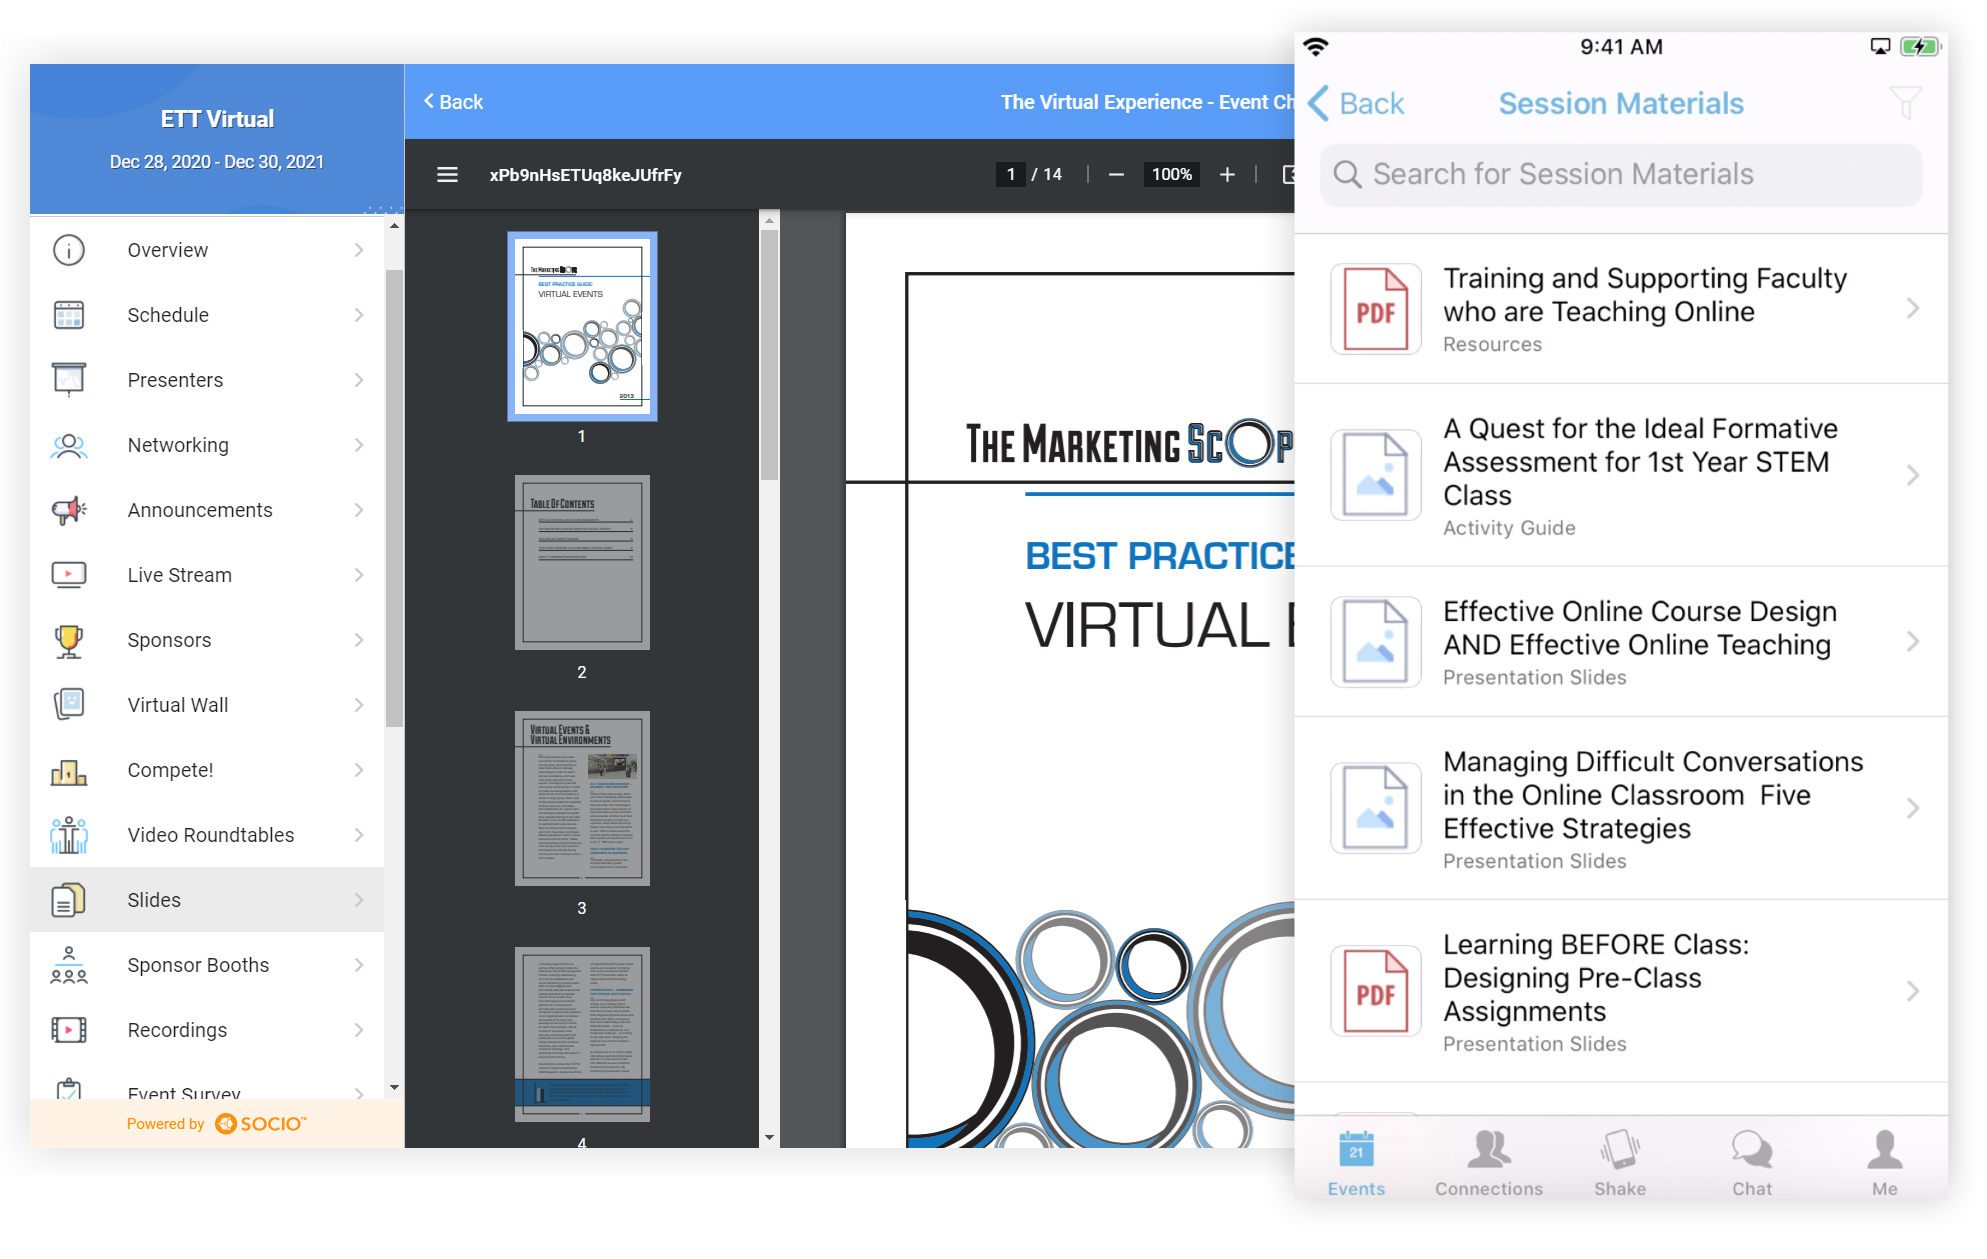 Screenshots of the Web App and Mobile App. The web app has a PDF open in the event. The Mobile App shows a list of documents.